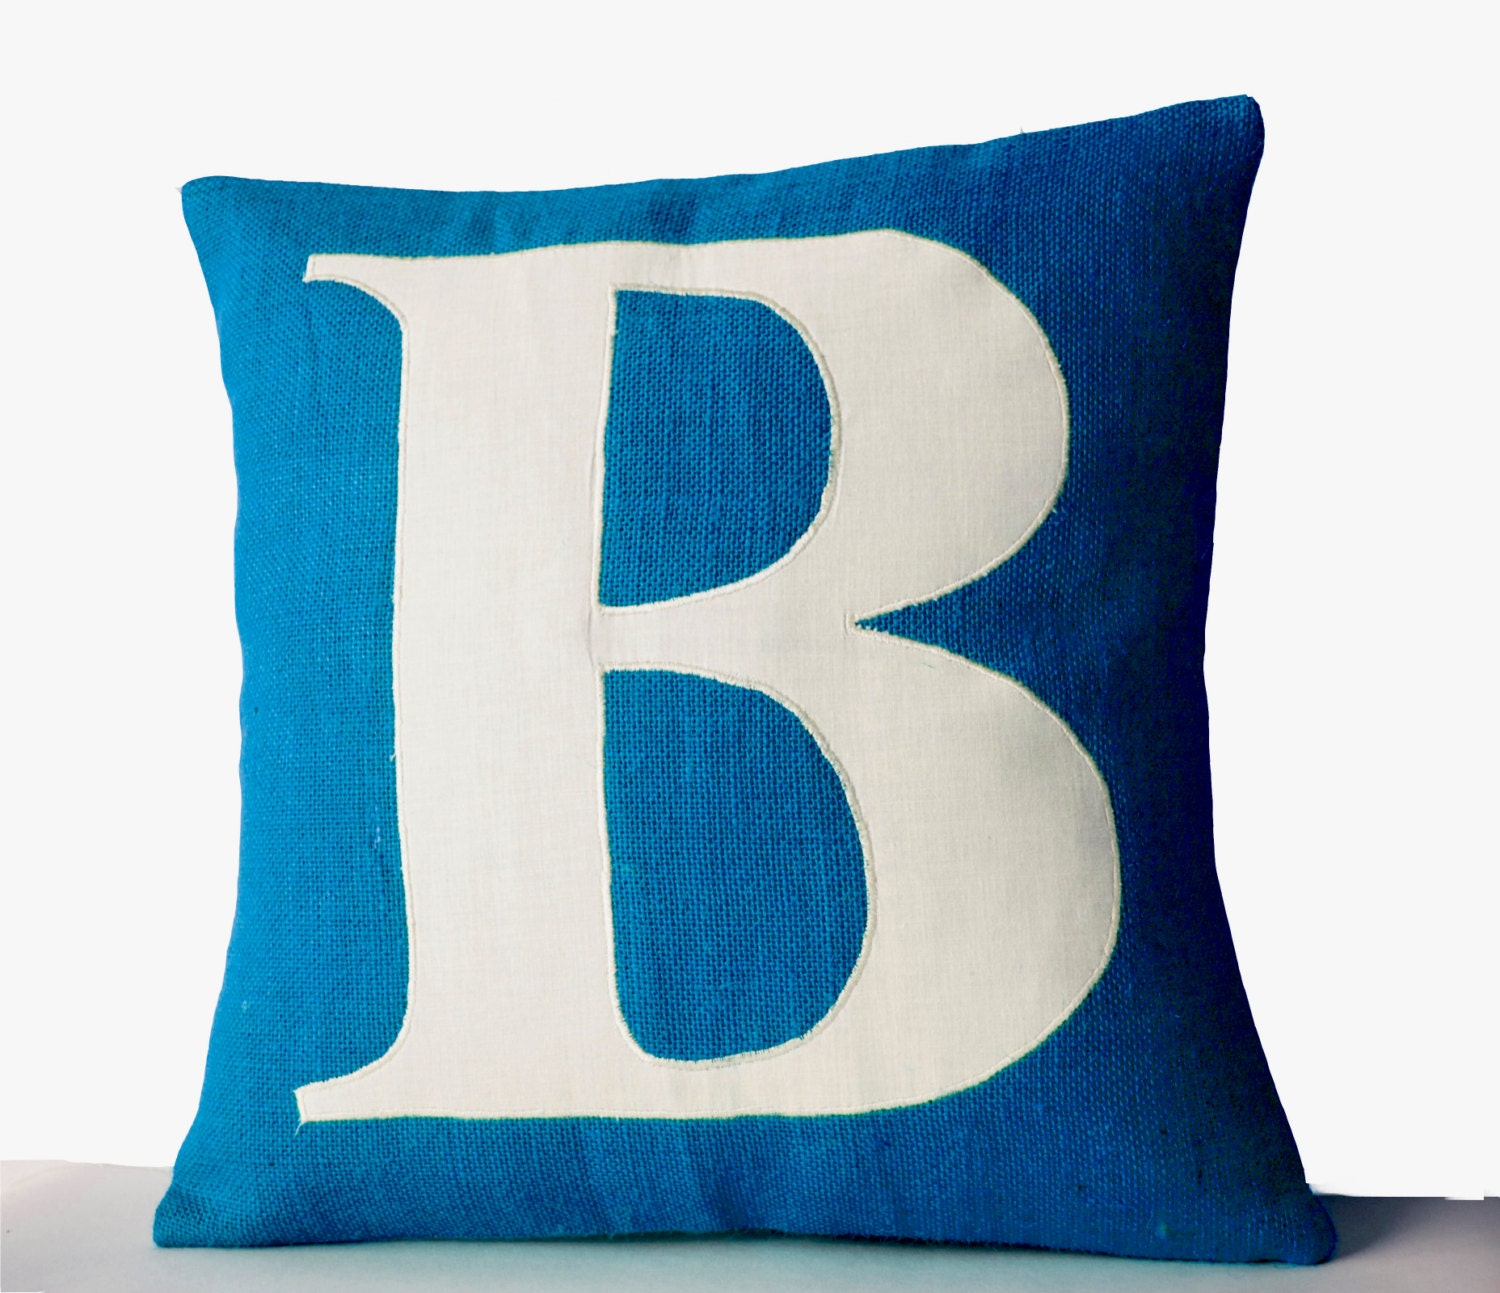 How To Make A Monogram Throw Pillow : Blue Pillows Personalized Monogram throw pillow Burlap